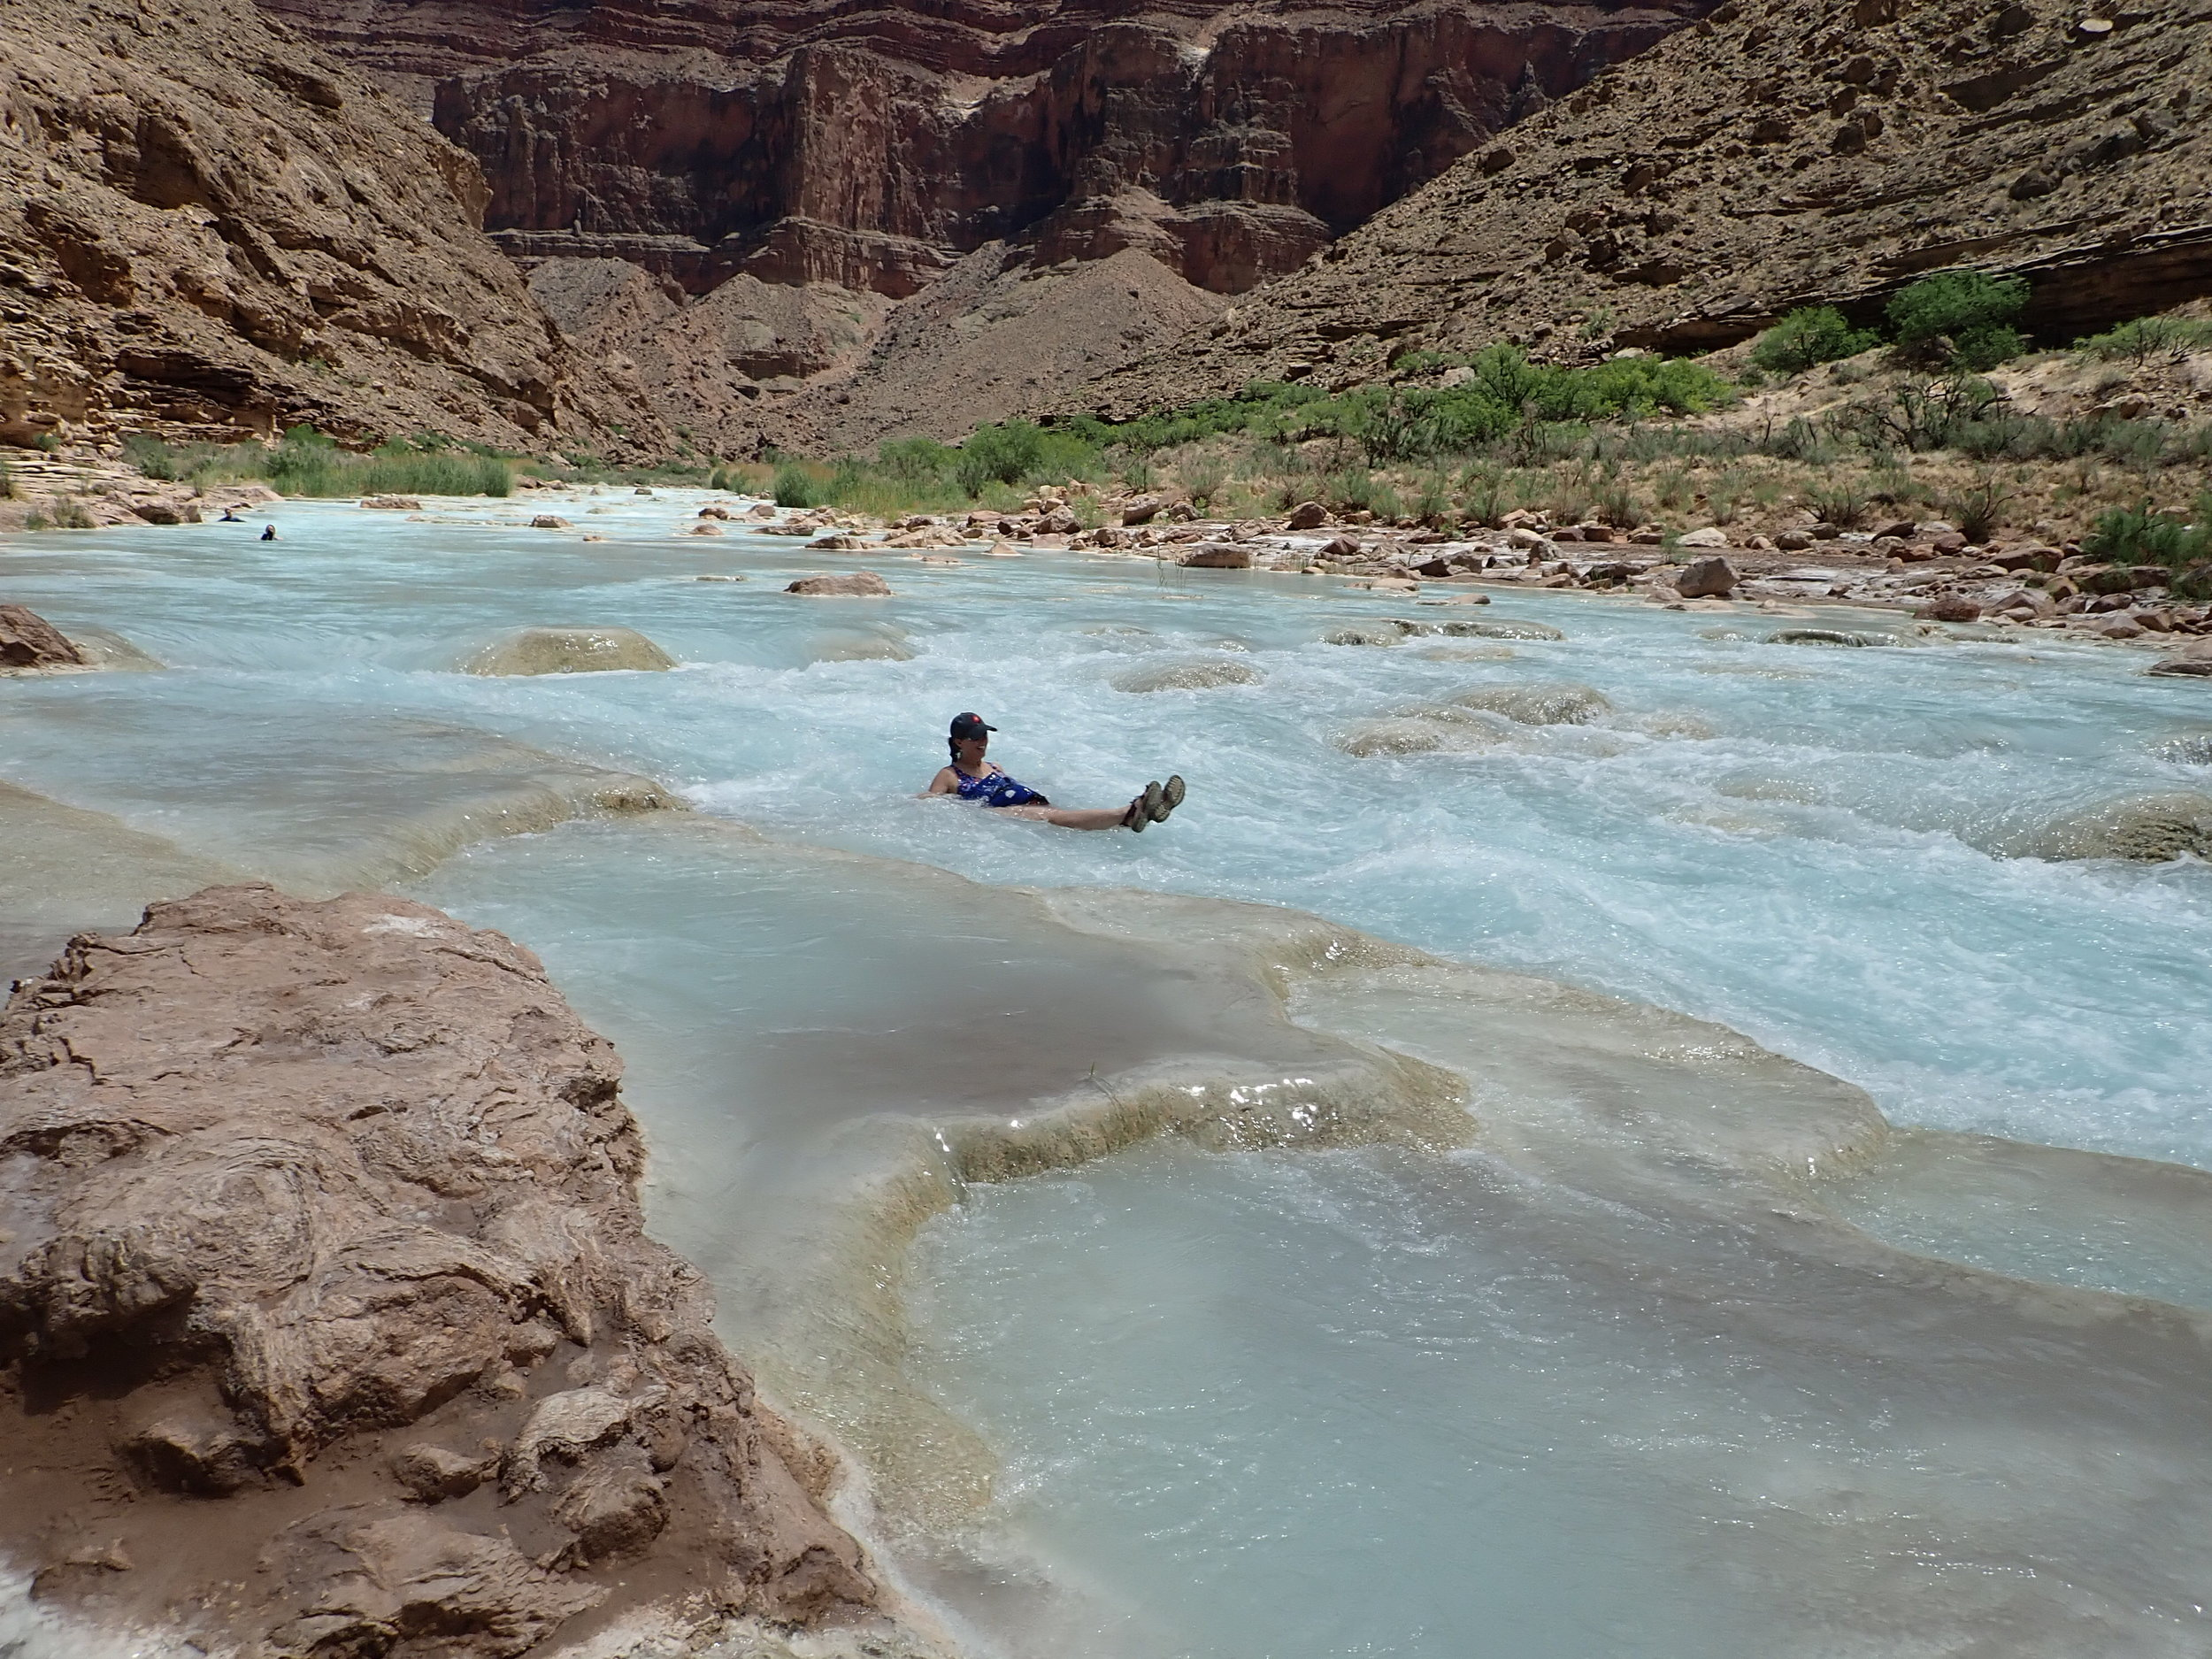 Riding the little rapids on the Little Colorado